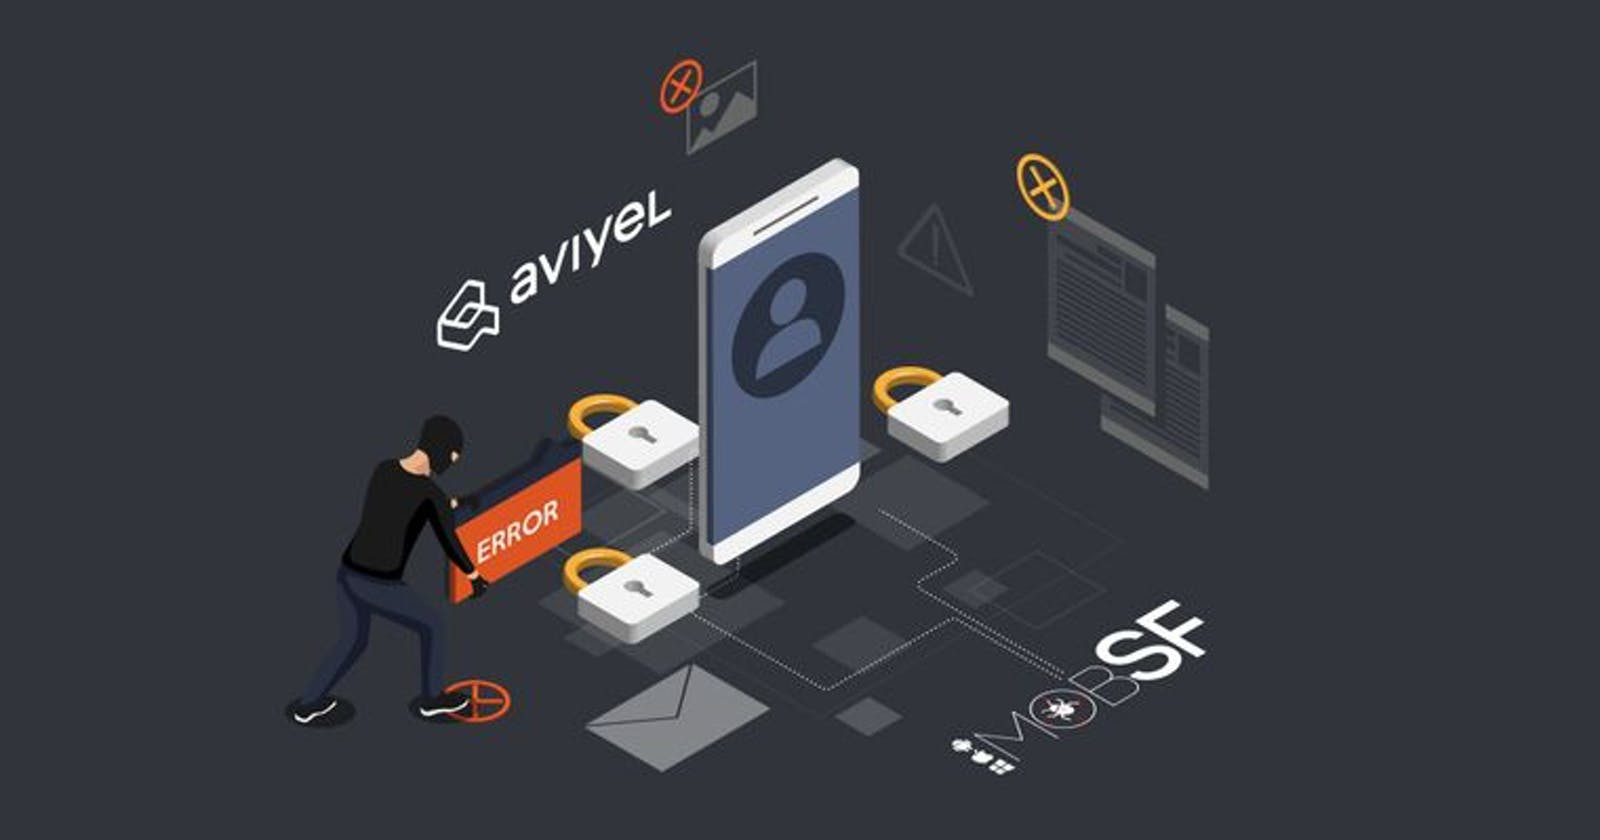 MobSF for Mobile Security